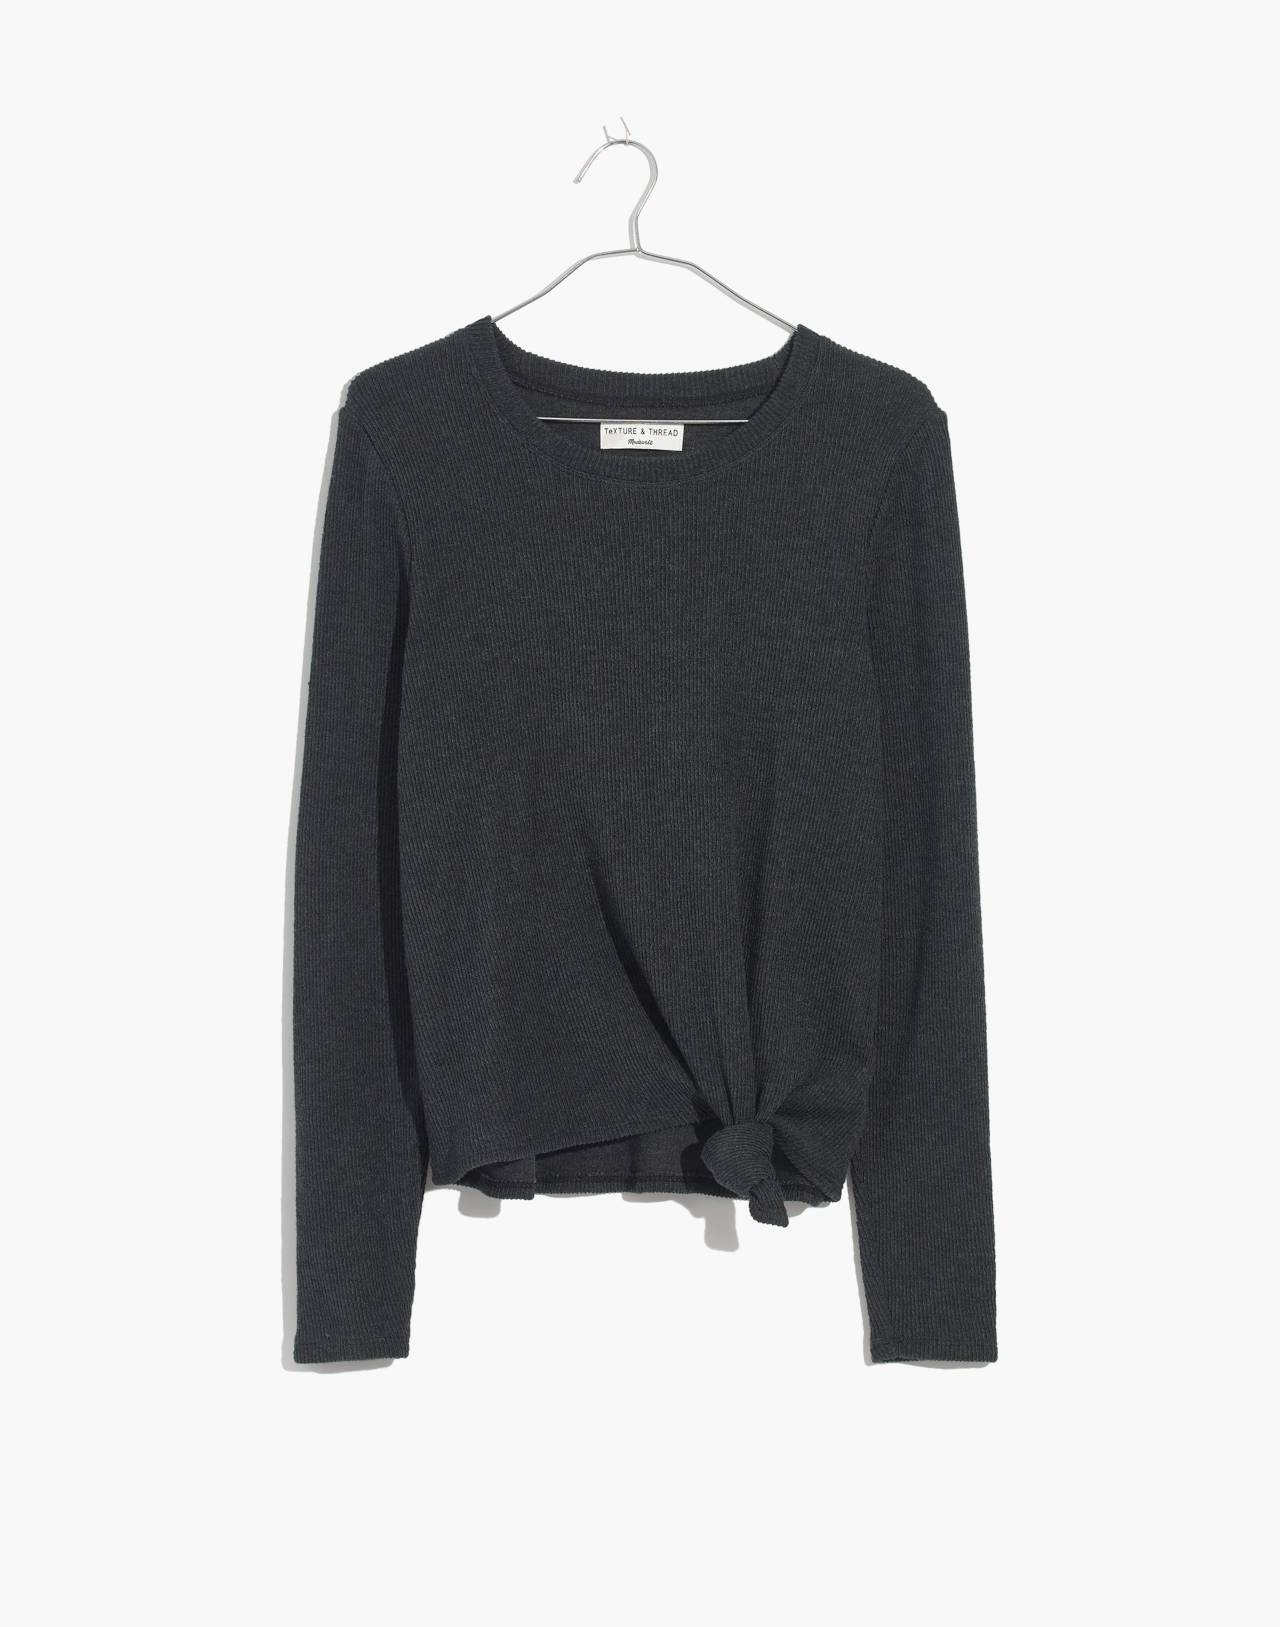 Texture & Thread Jacquard Knot-Front Top in hthr coal image 1